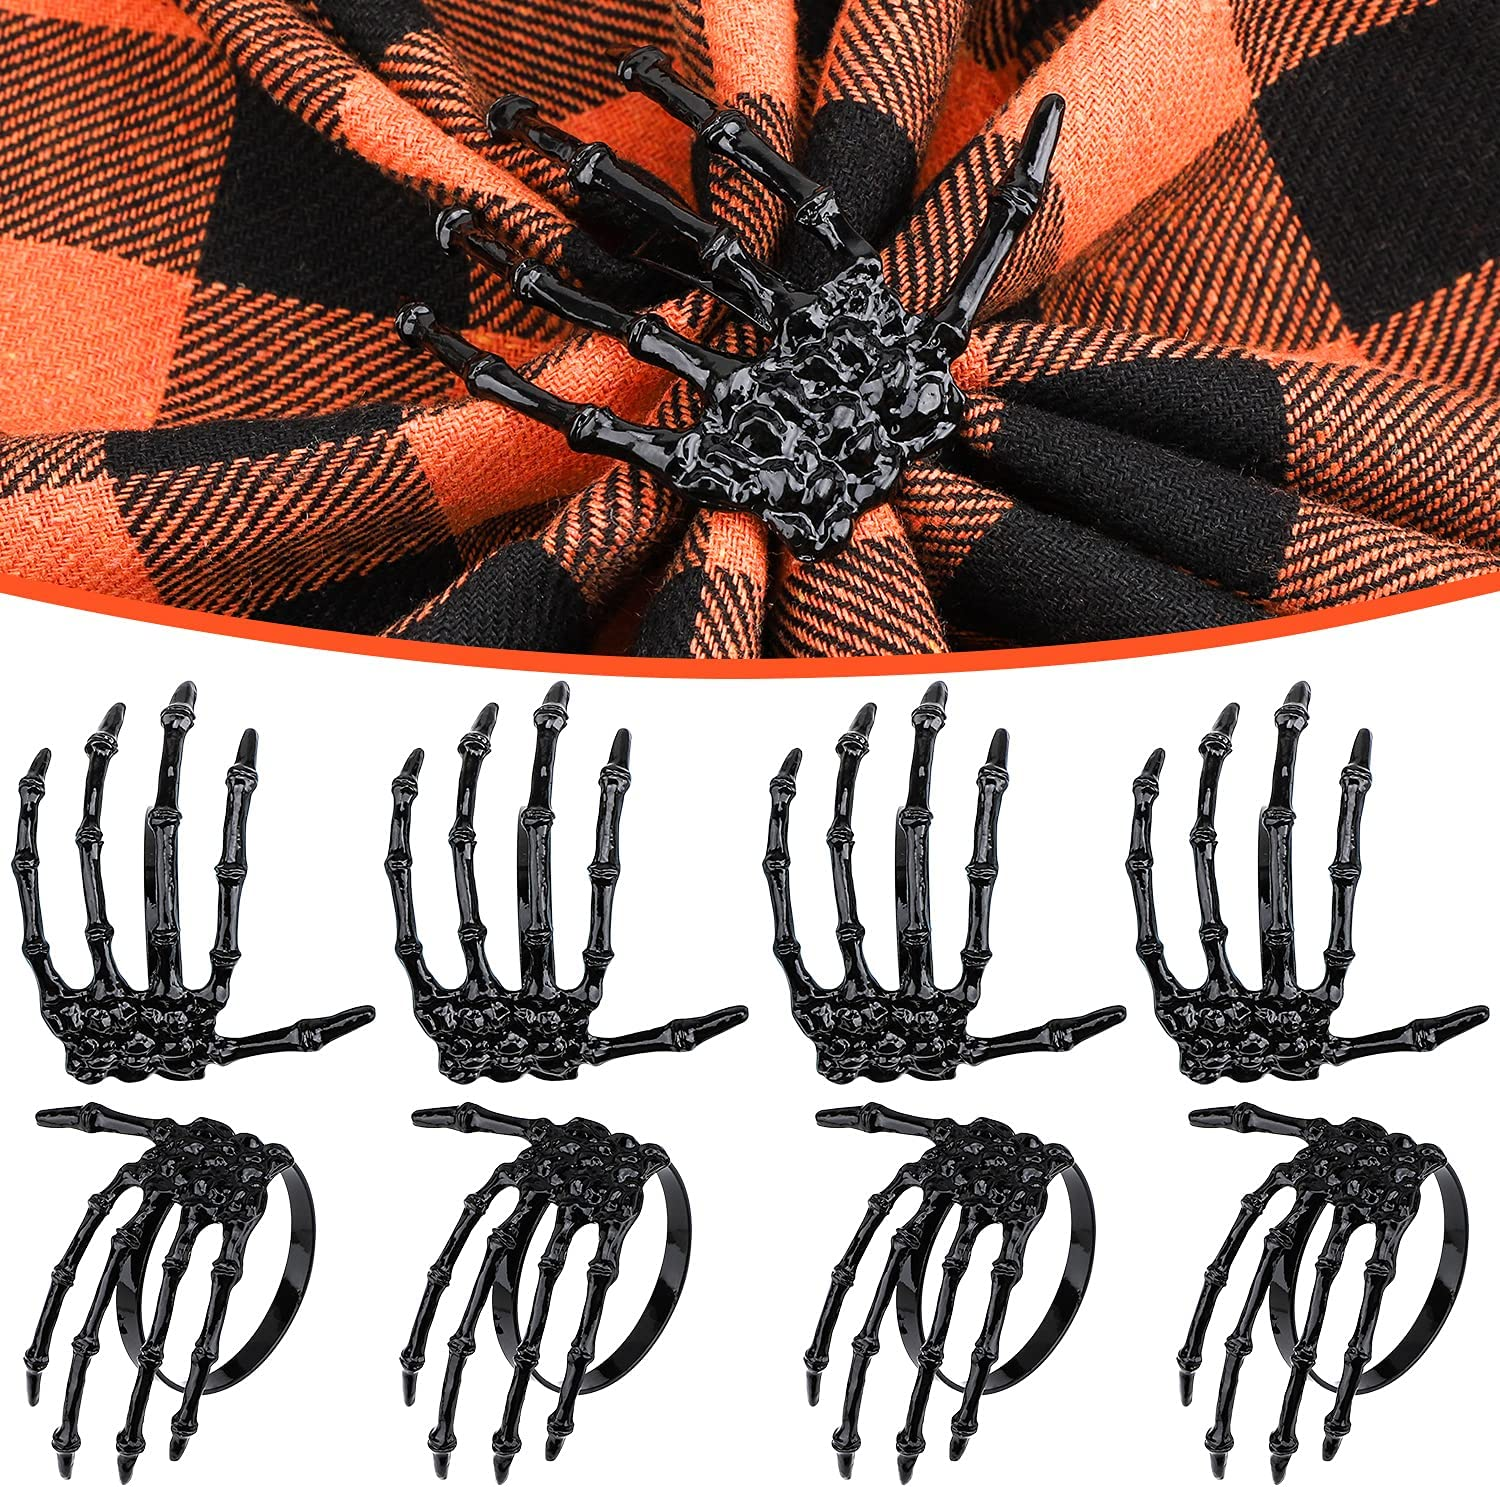 Halloween Napkin Rings Decoration 8 Pcs, Metal Rings Holders for Home Birthday Party Dinner Table Favors Supplies Halloween Bar Dinning Costume Decor (Black Skeleton Claw)